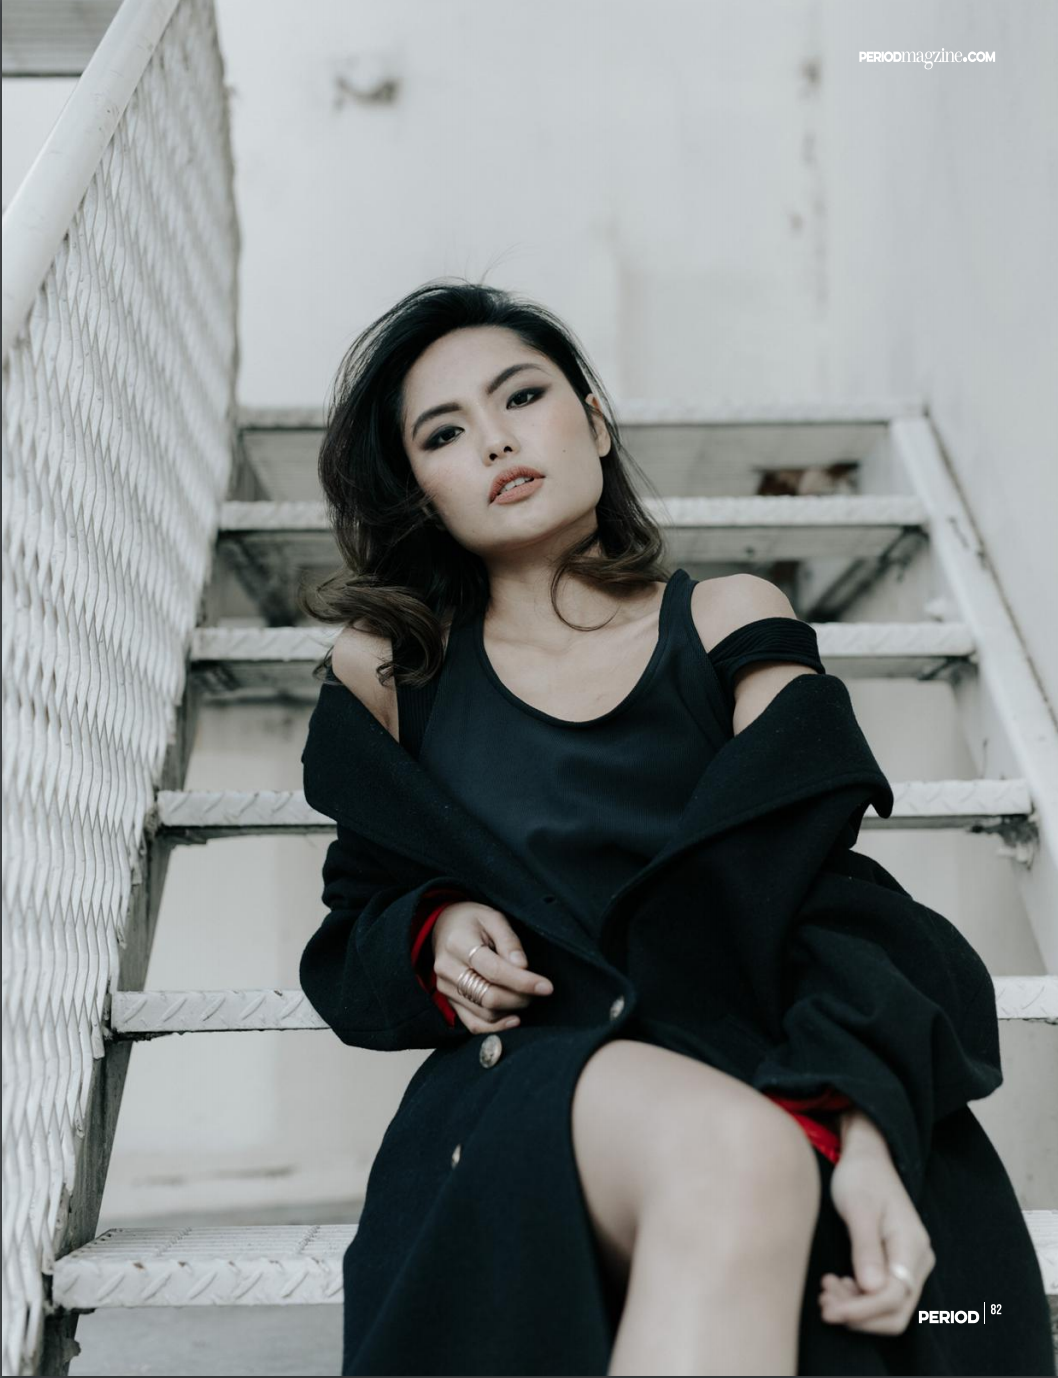 Downtown Sundays editorial: Shot by Jenny Wu Straight No Chaser Photography Canberra based